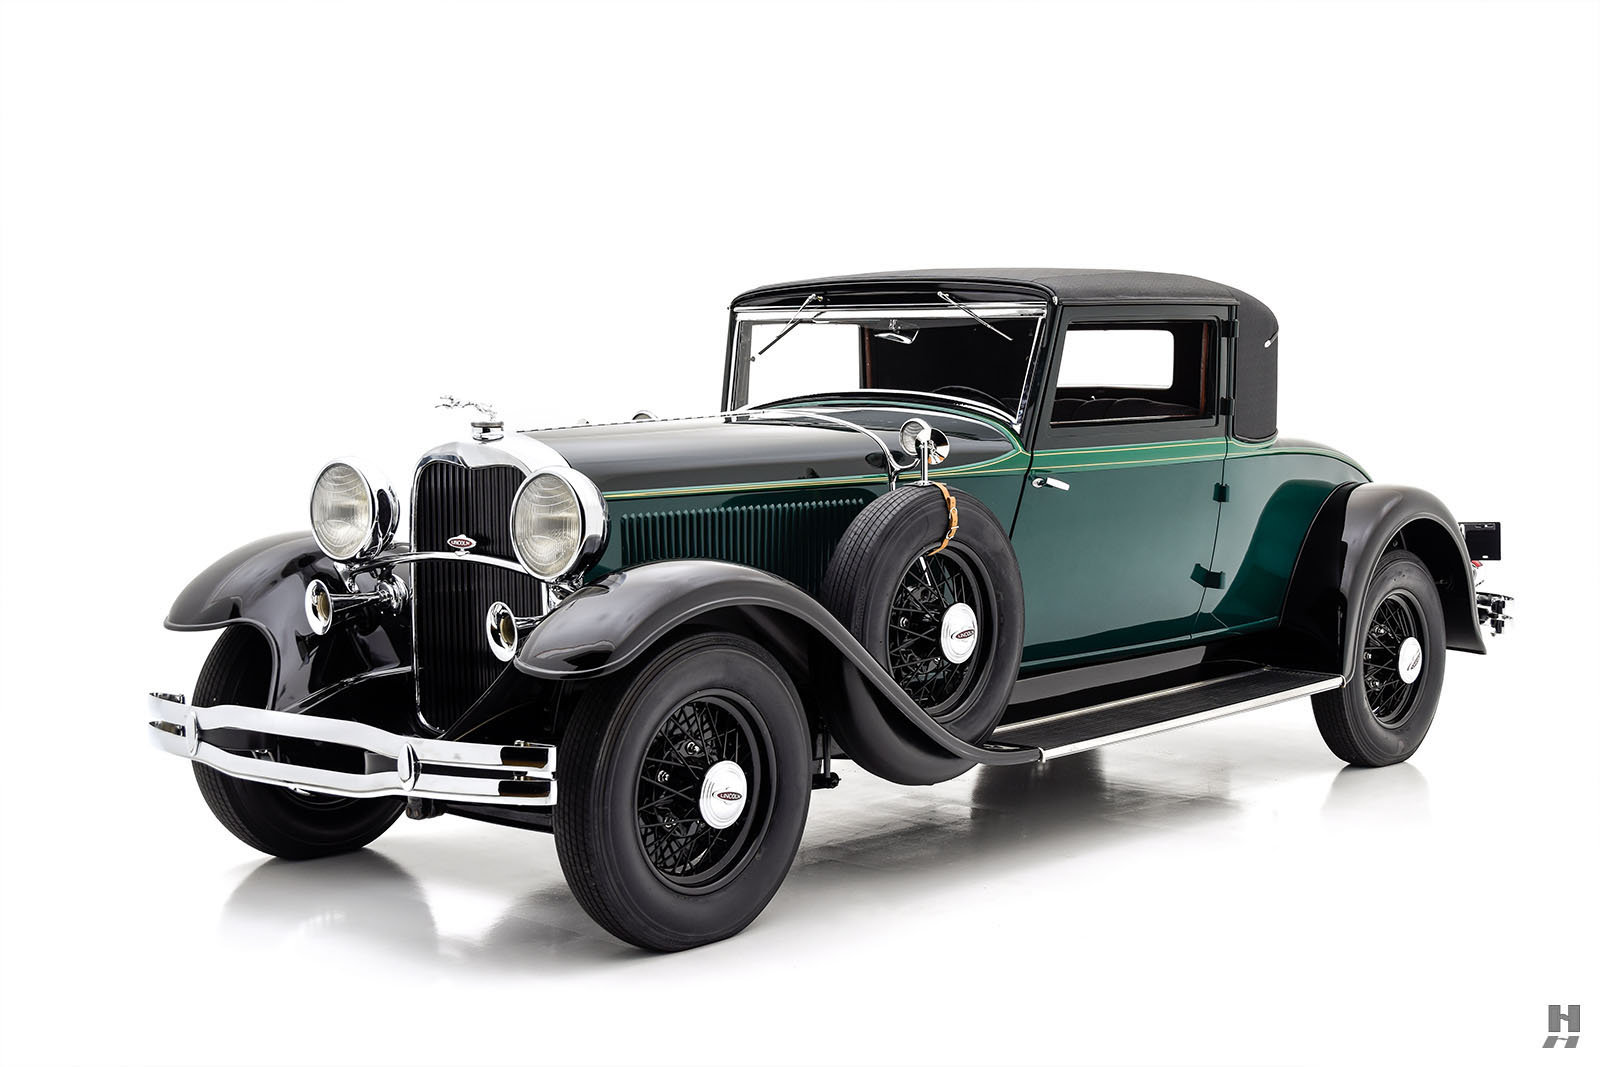 1931 LINCOLN MODEL K JUDKINS COUPE For Sale (picture 1 of 6)